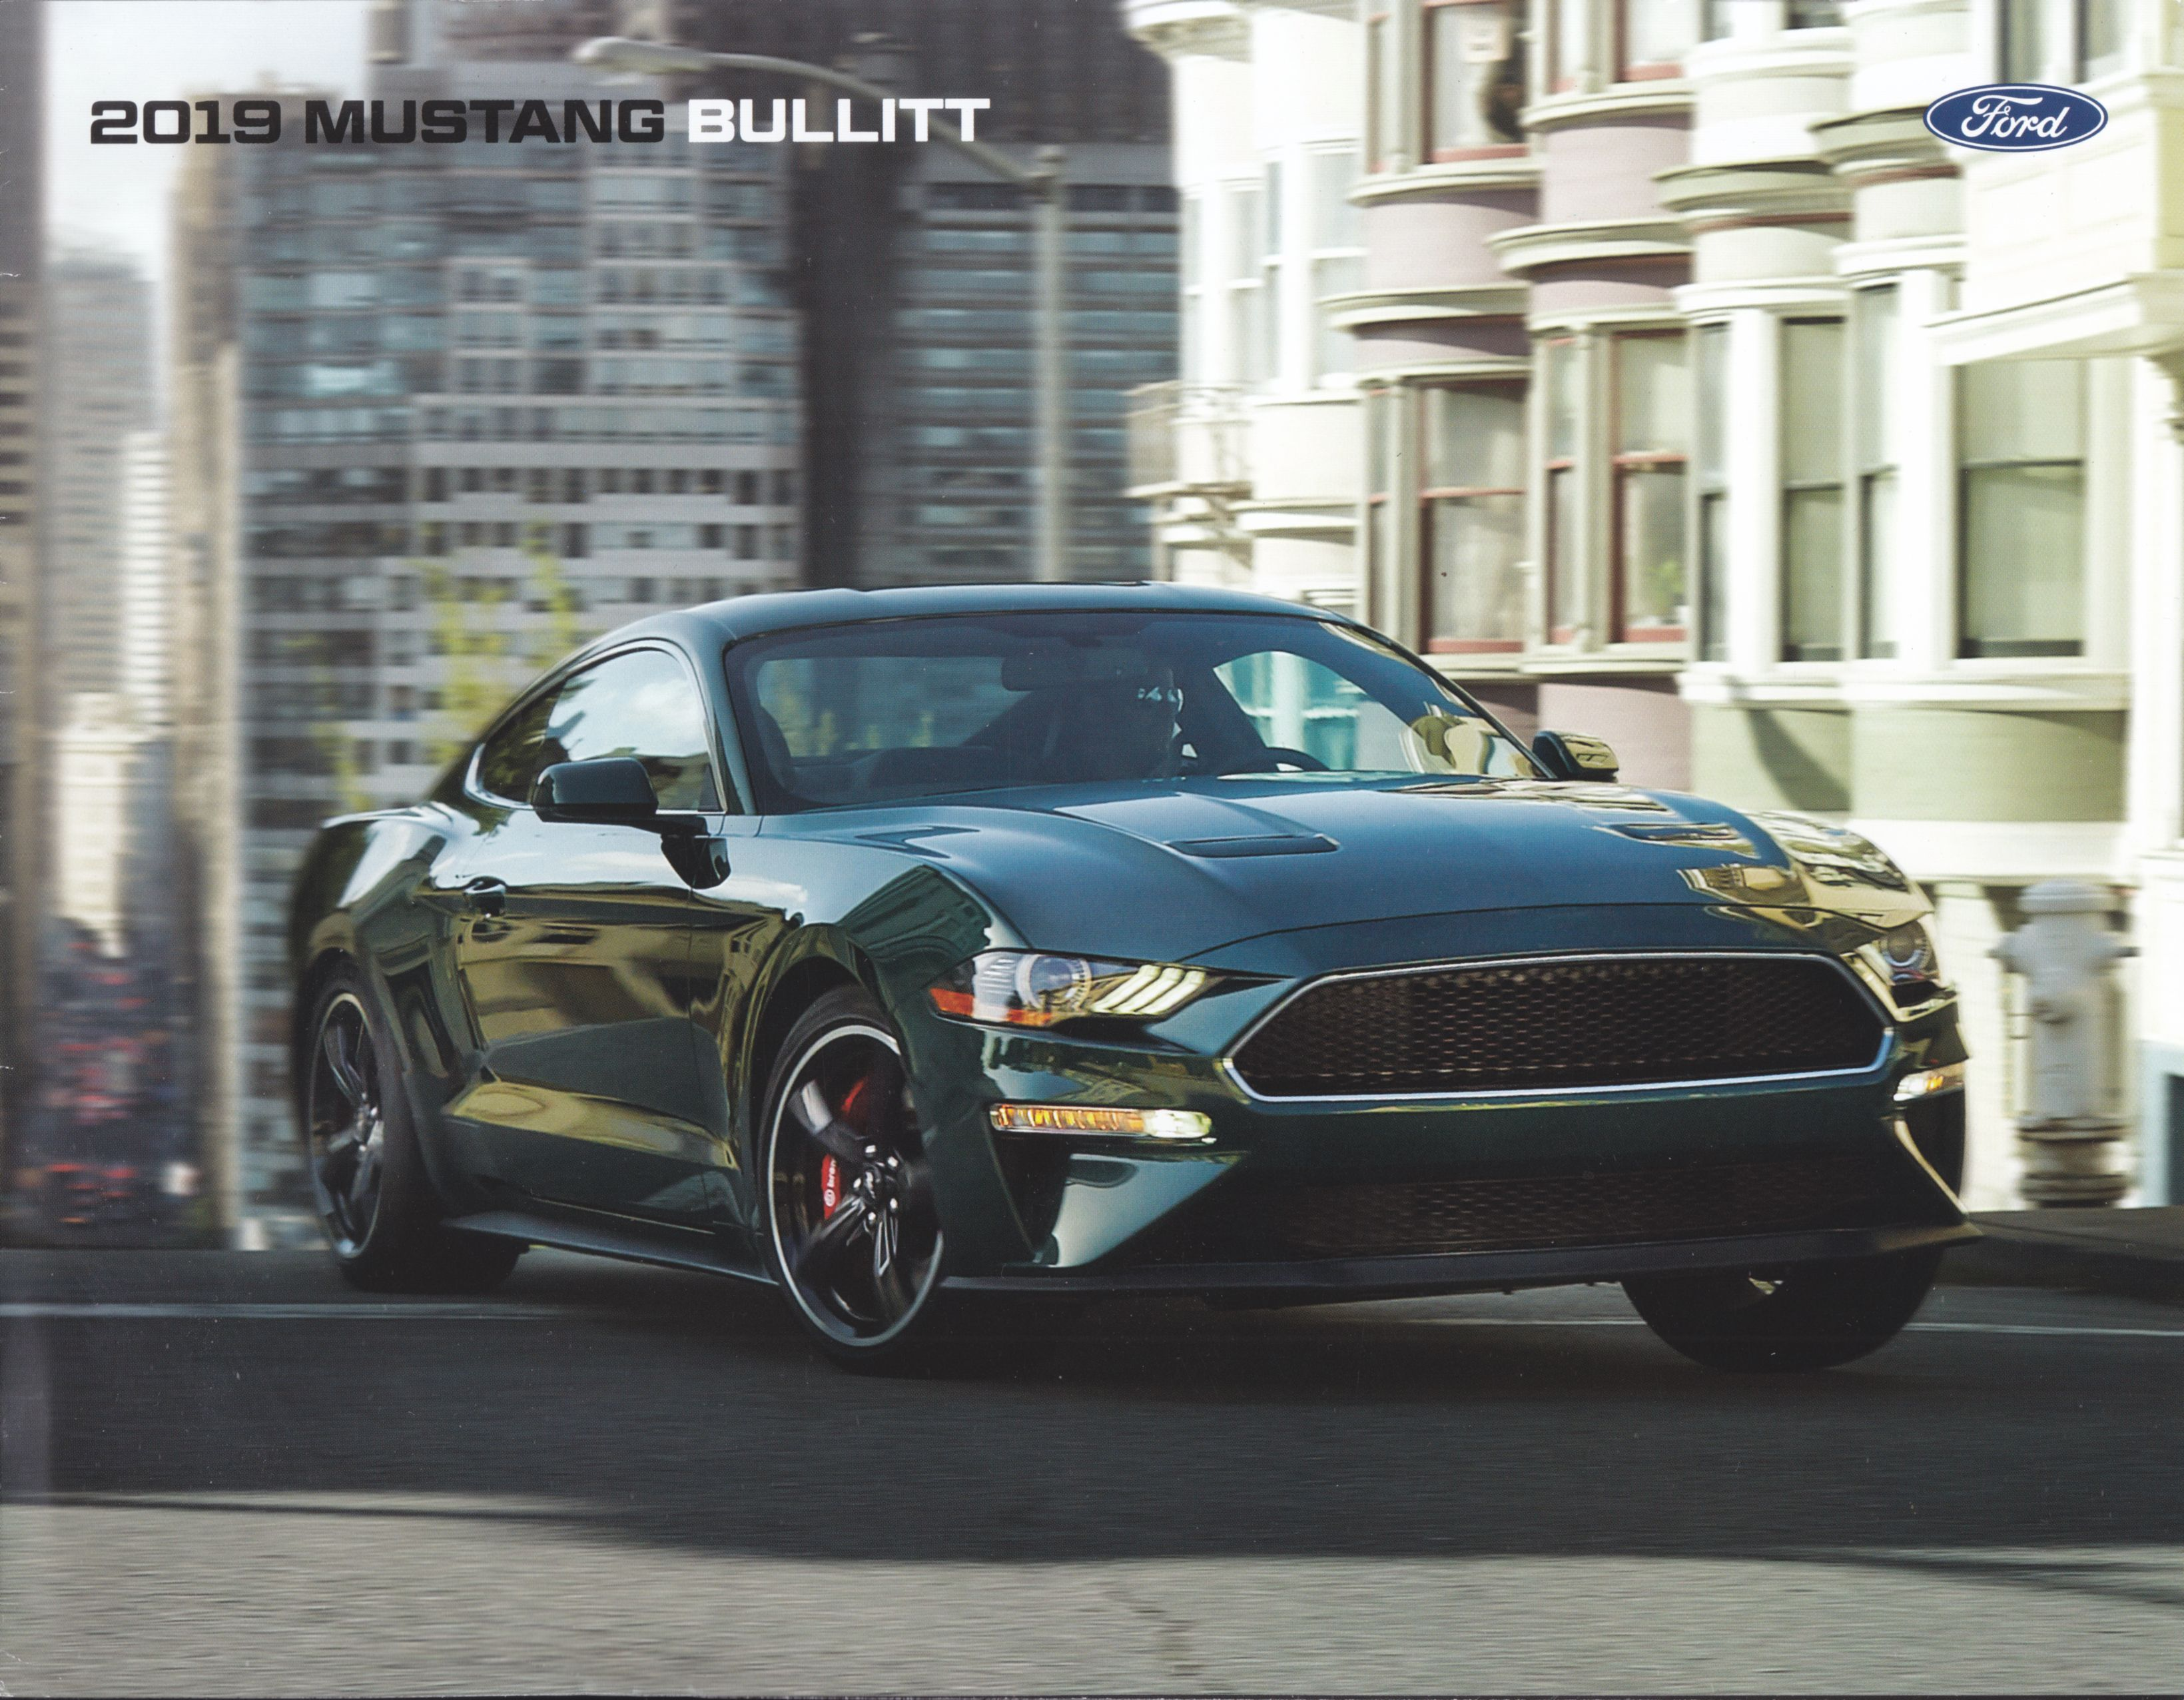 Ford mustang bullitt 2019 4 page us sales brochure car sales